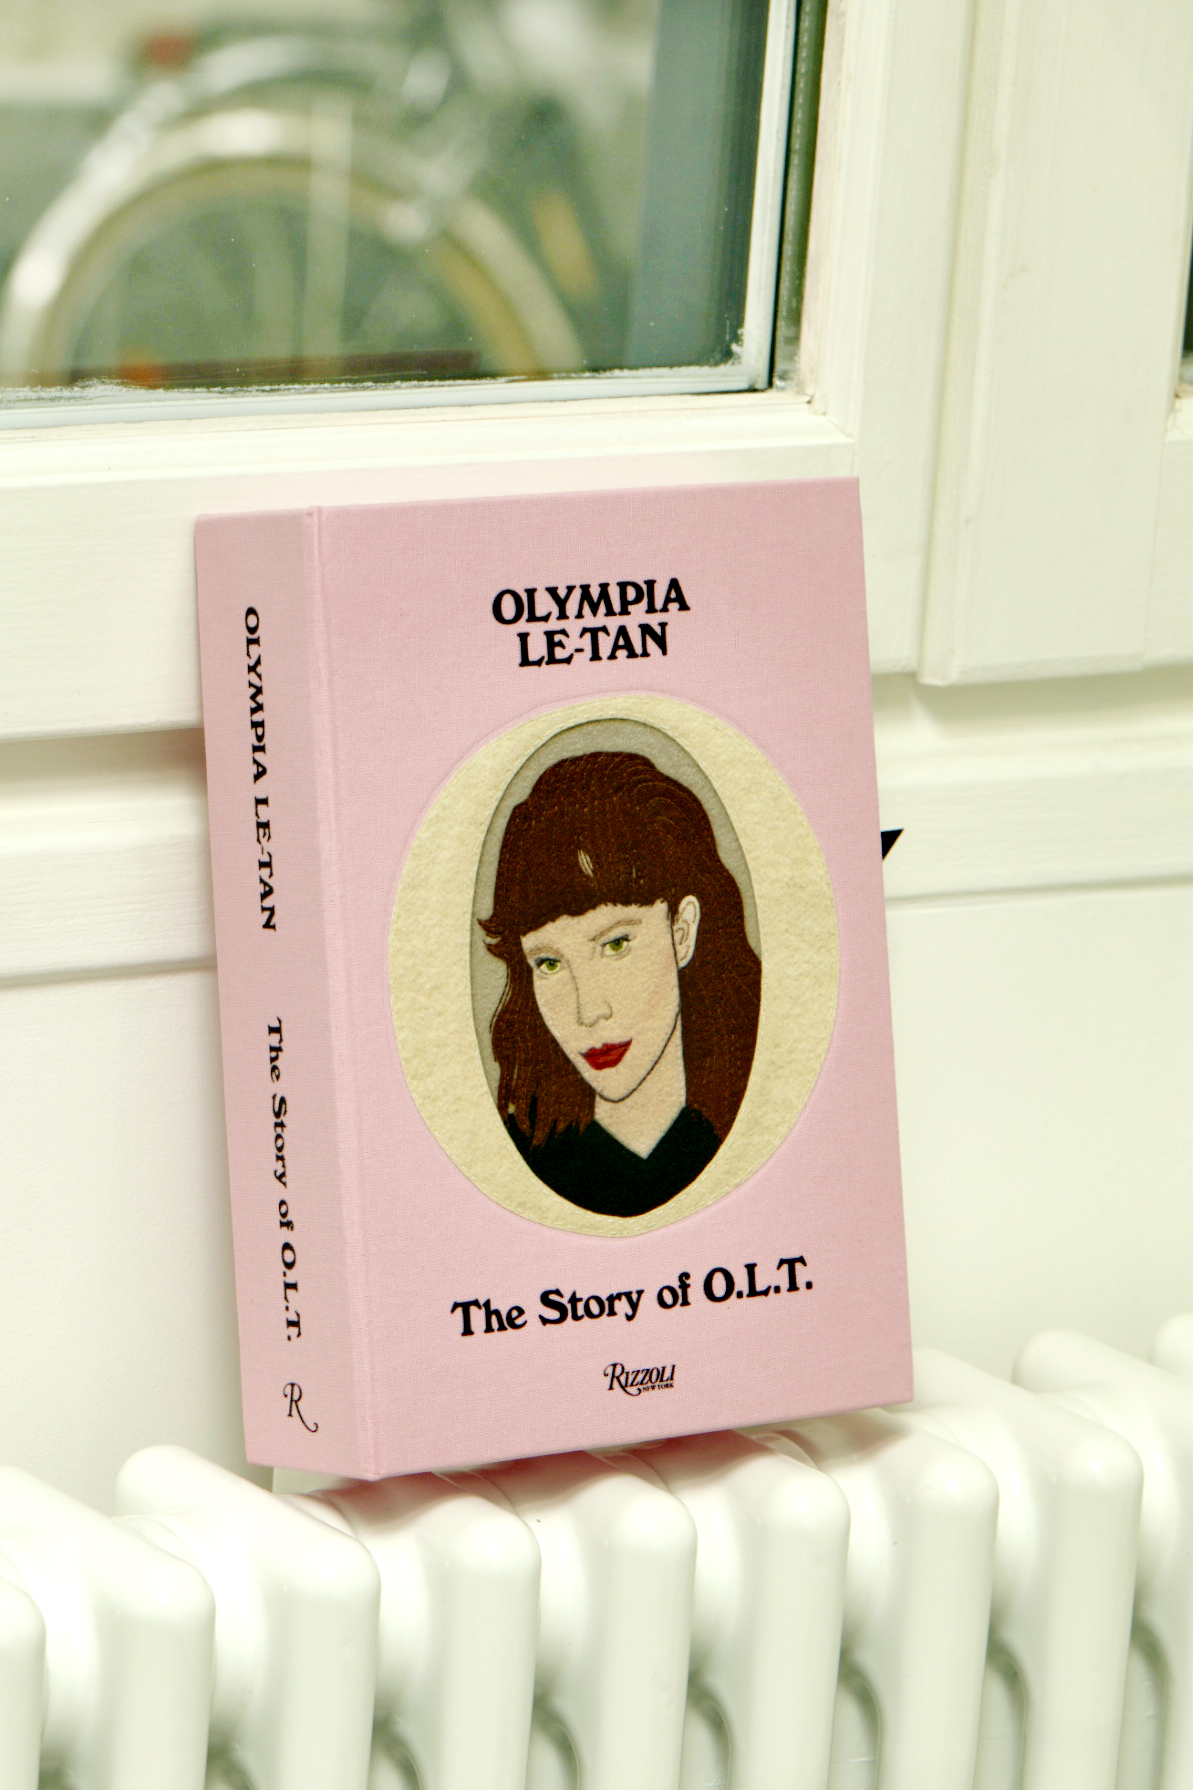 OLYMPIA LE TAN CARTON MAGAZINE